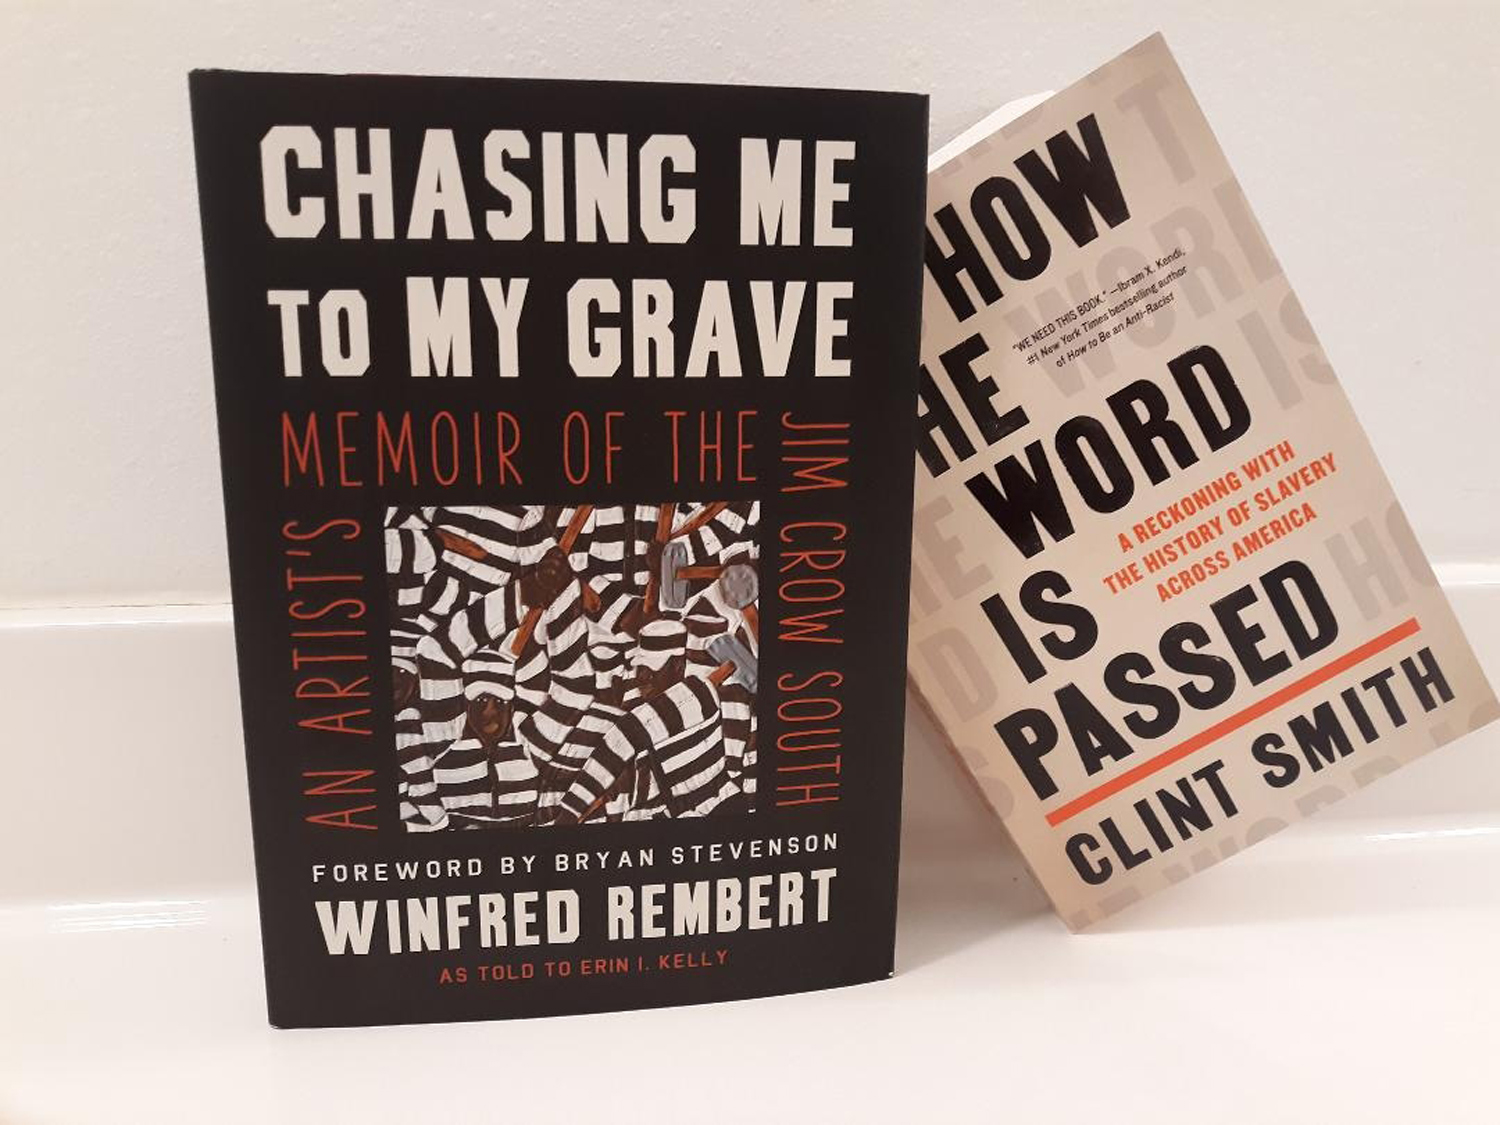 Two great works on Black American history to check out now